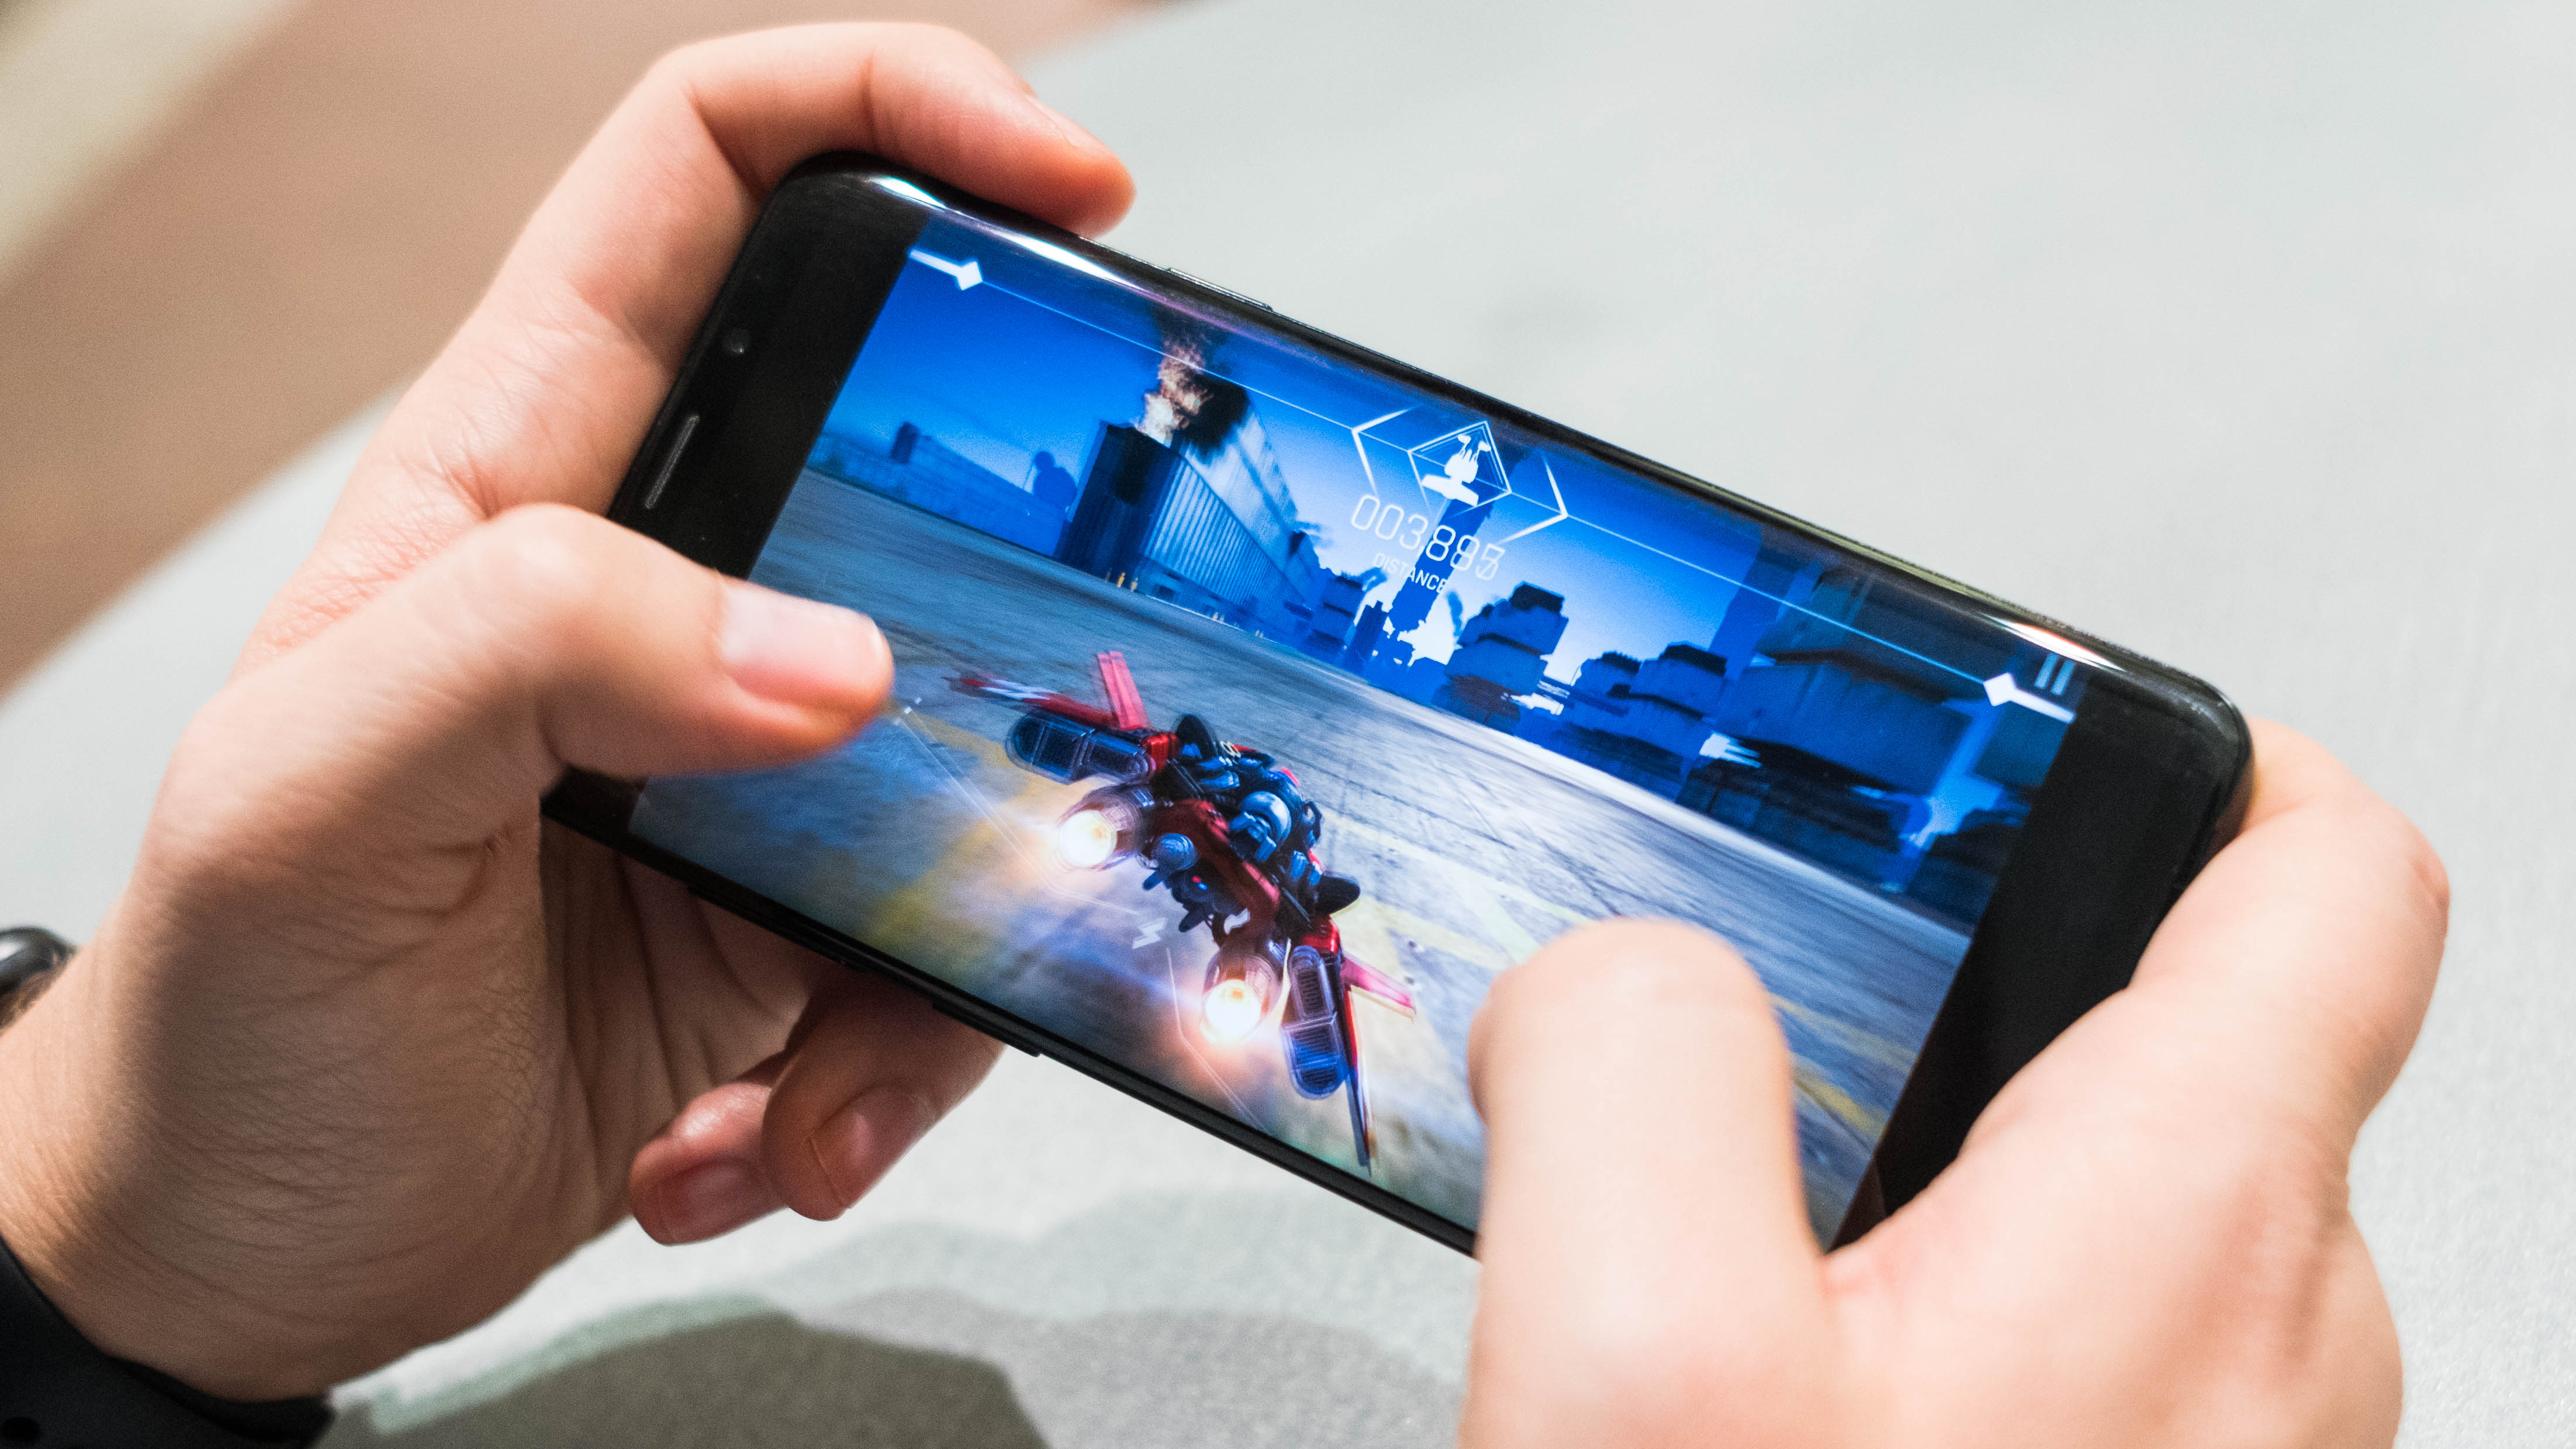 Mobile Games on Android - news image on imei.info